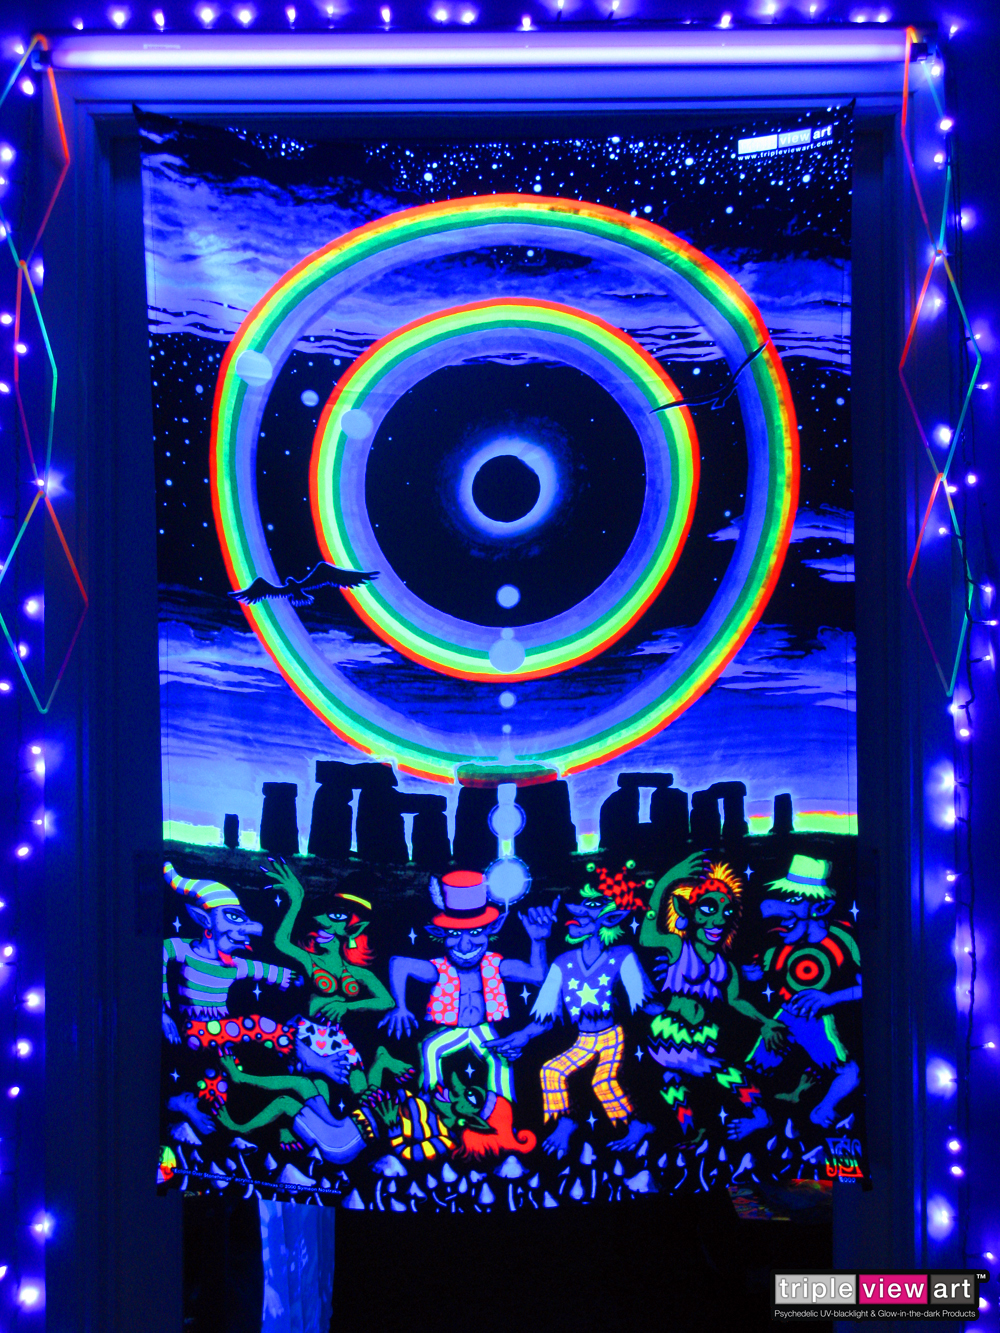 Eclipse Over Stonehenge UV Blacklight Fluorescent Glow Psychedelic Visionary Art Backdrop